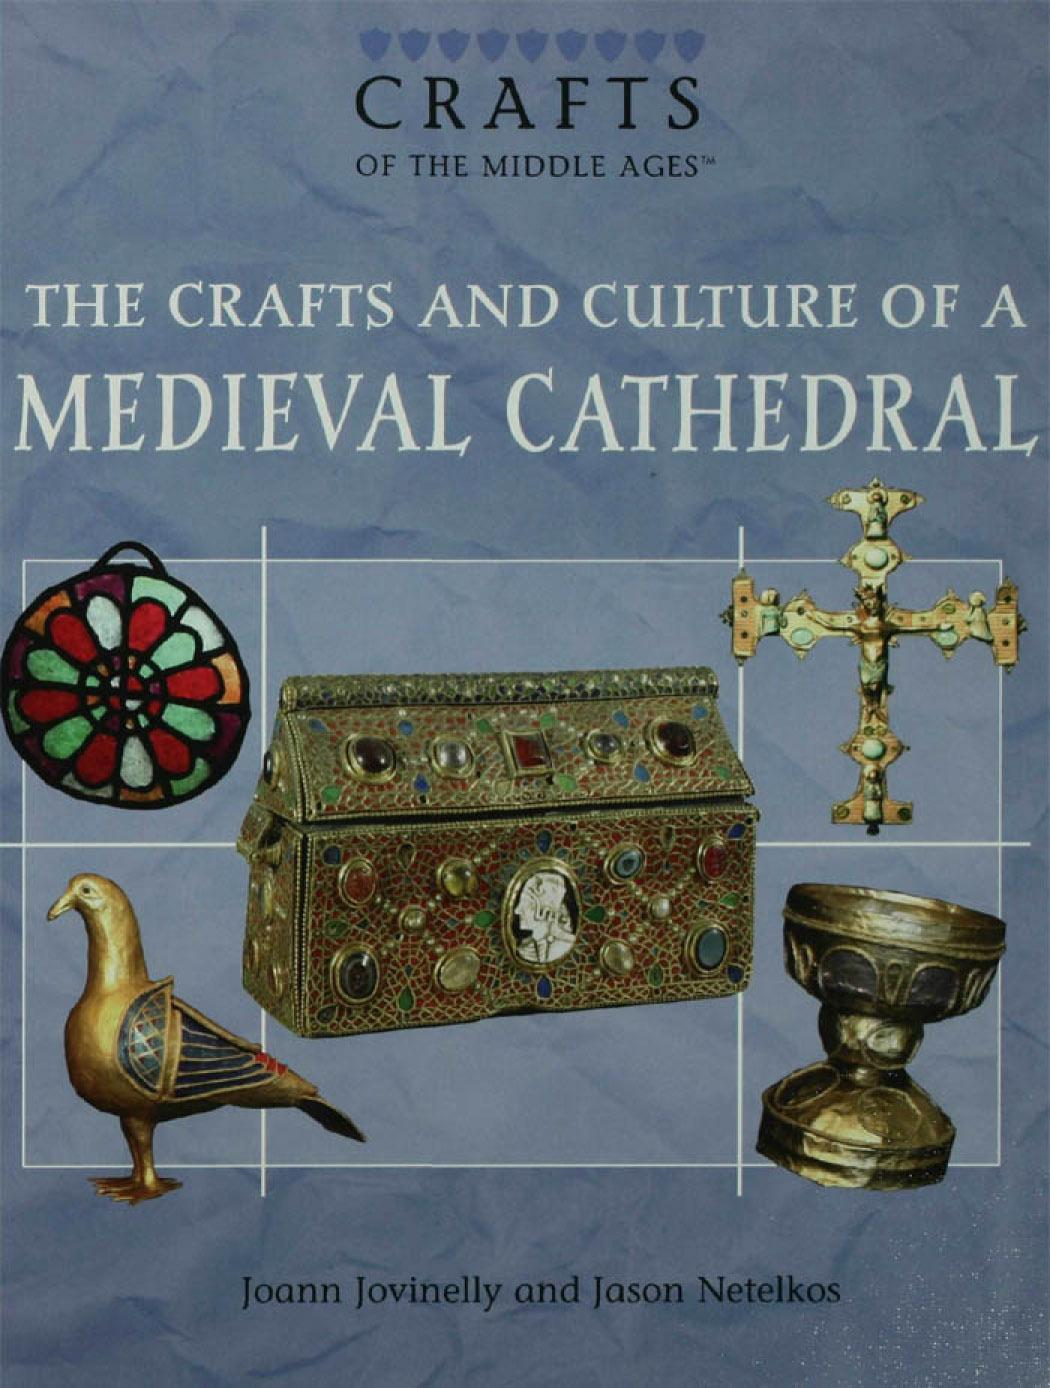 The Crafts and Culture of a Medieval Cathedral